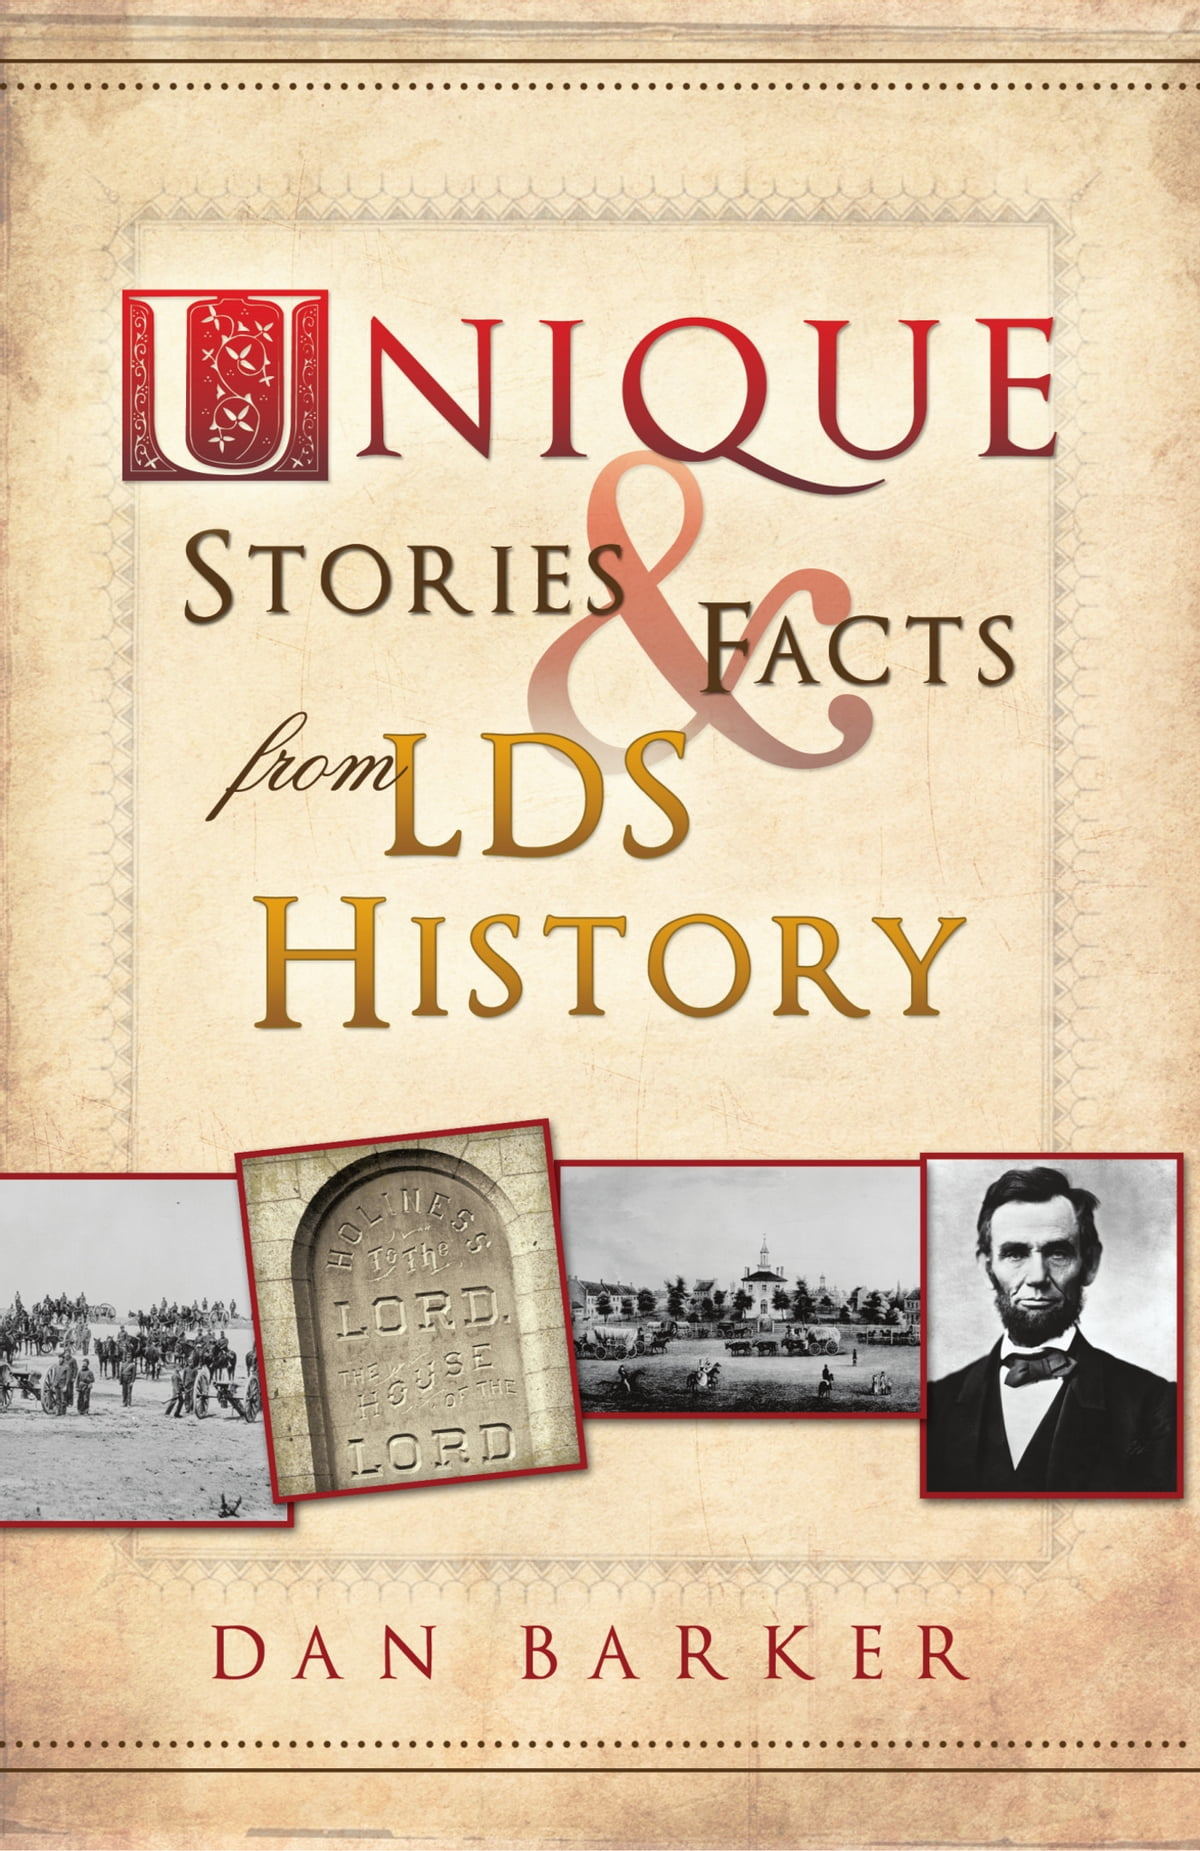 unique stories and facts from lds history ebookdan barker